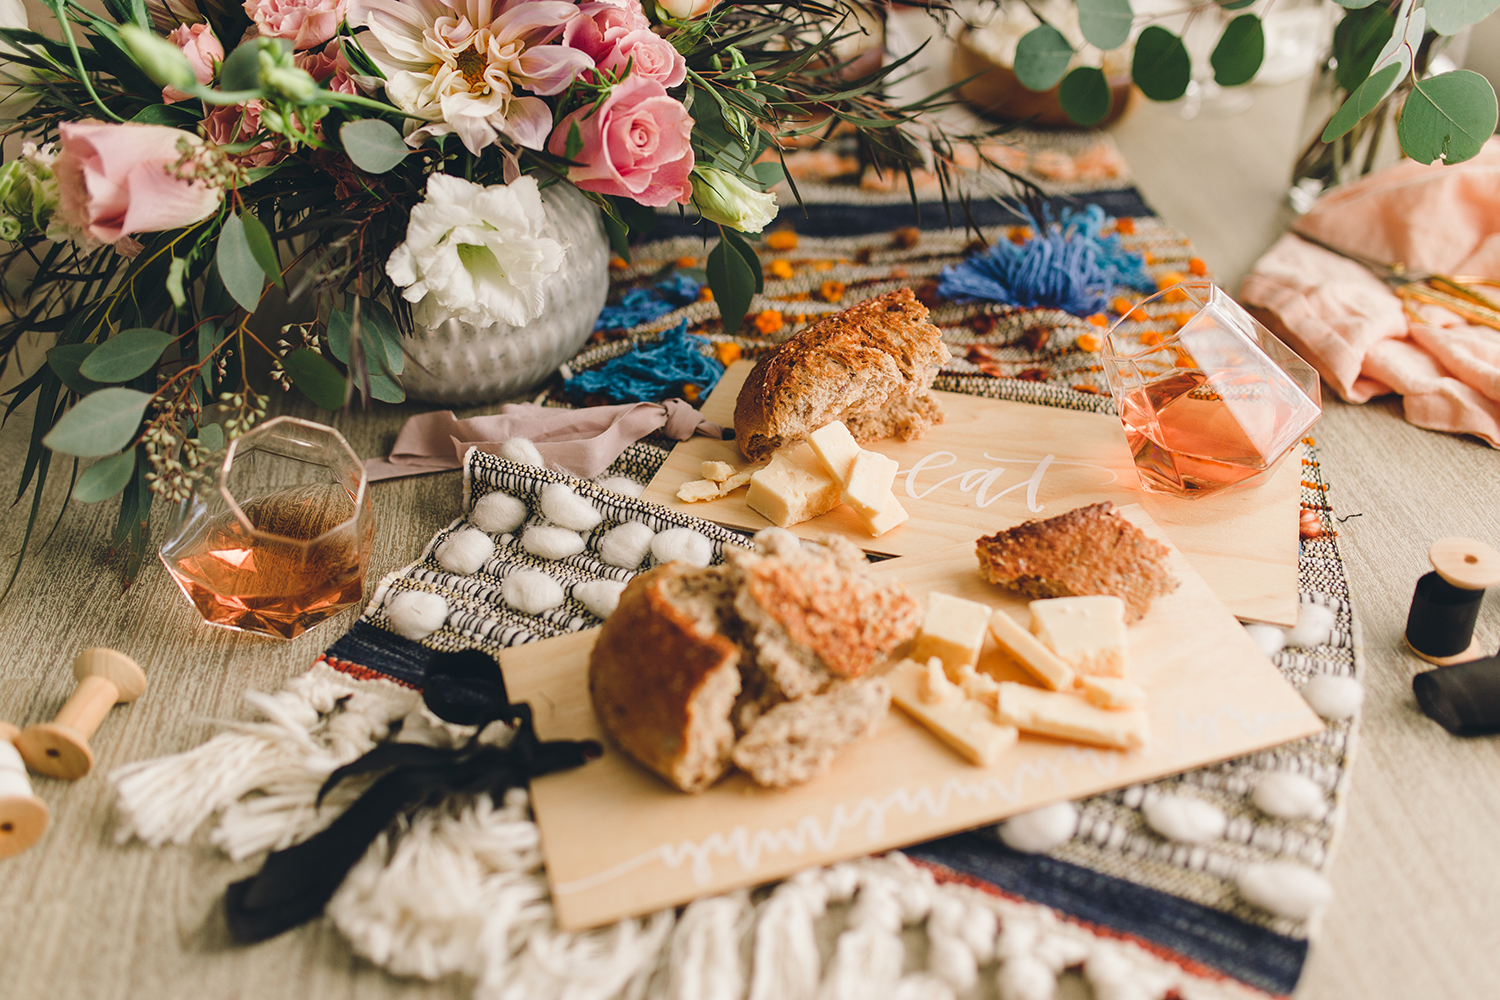 Wood serving boards for gifts, place cards or decorating the dinner table | A Fabulous Fete